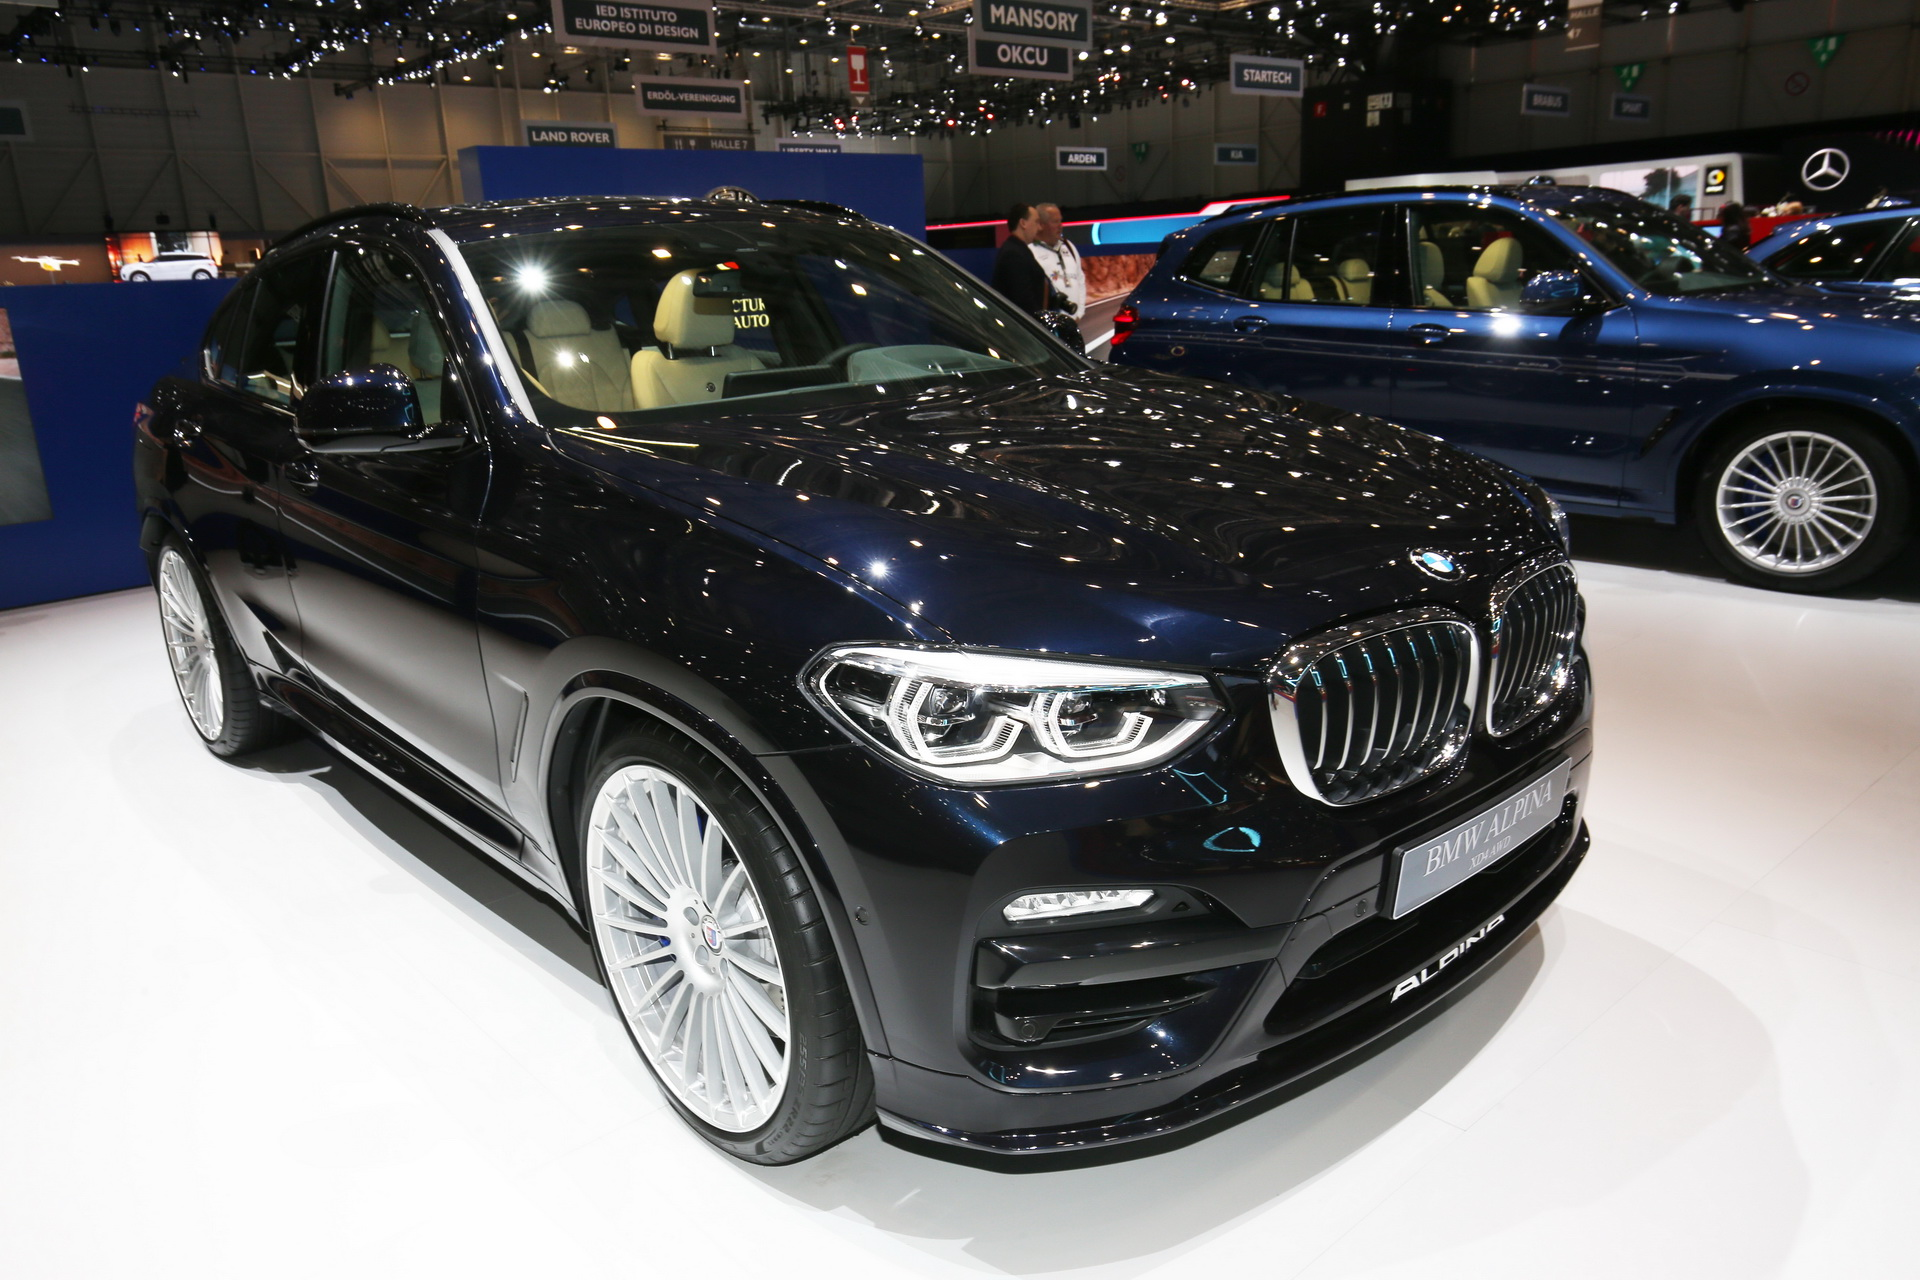 The vehicle is based on the latest-generation BMW X4, comes with a stronger engine and can be purchased at € 80,000 and above